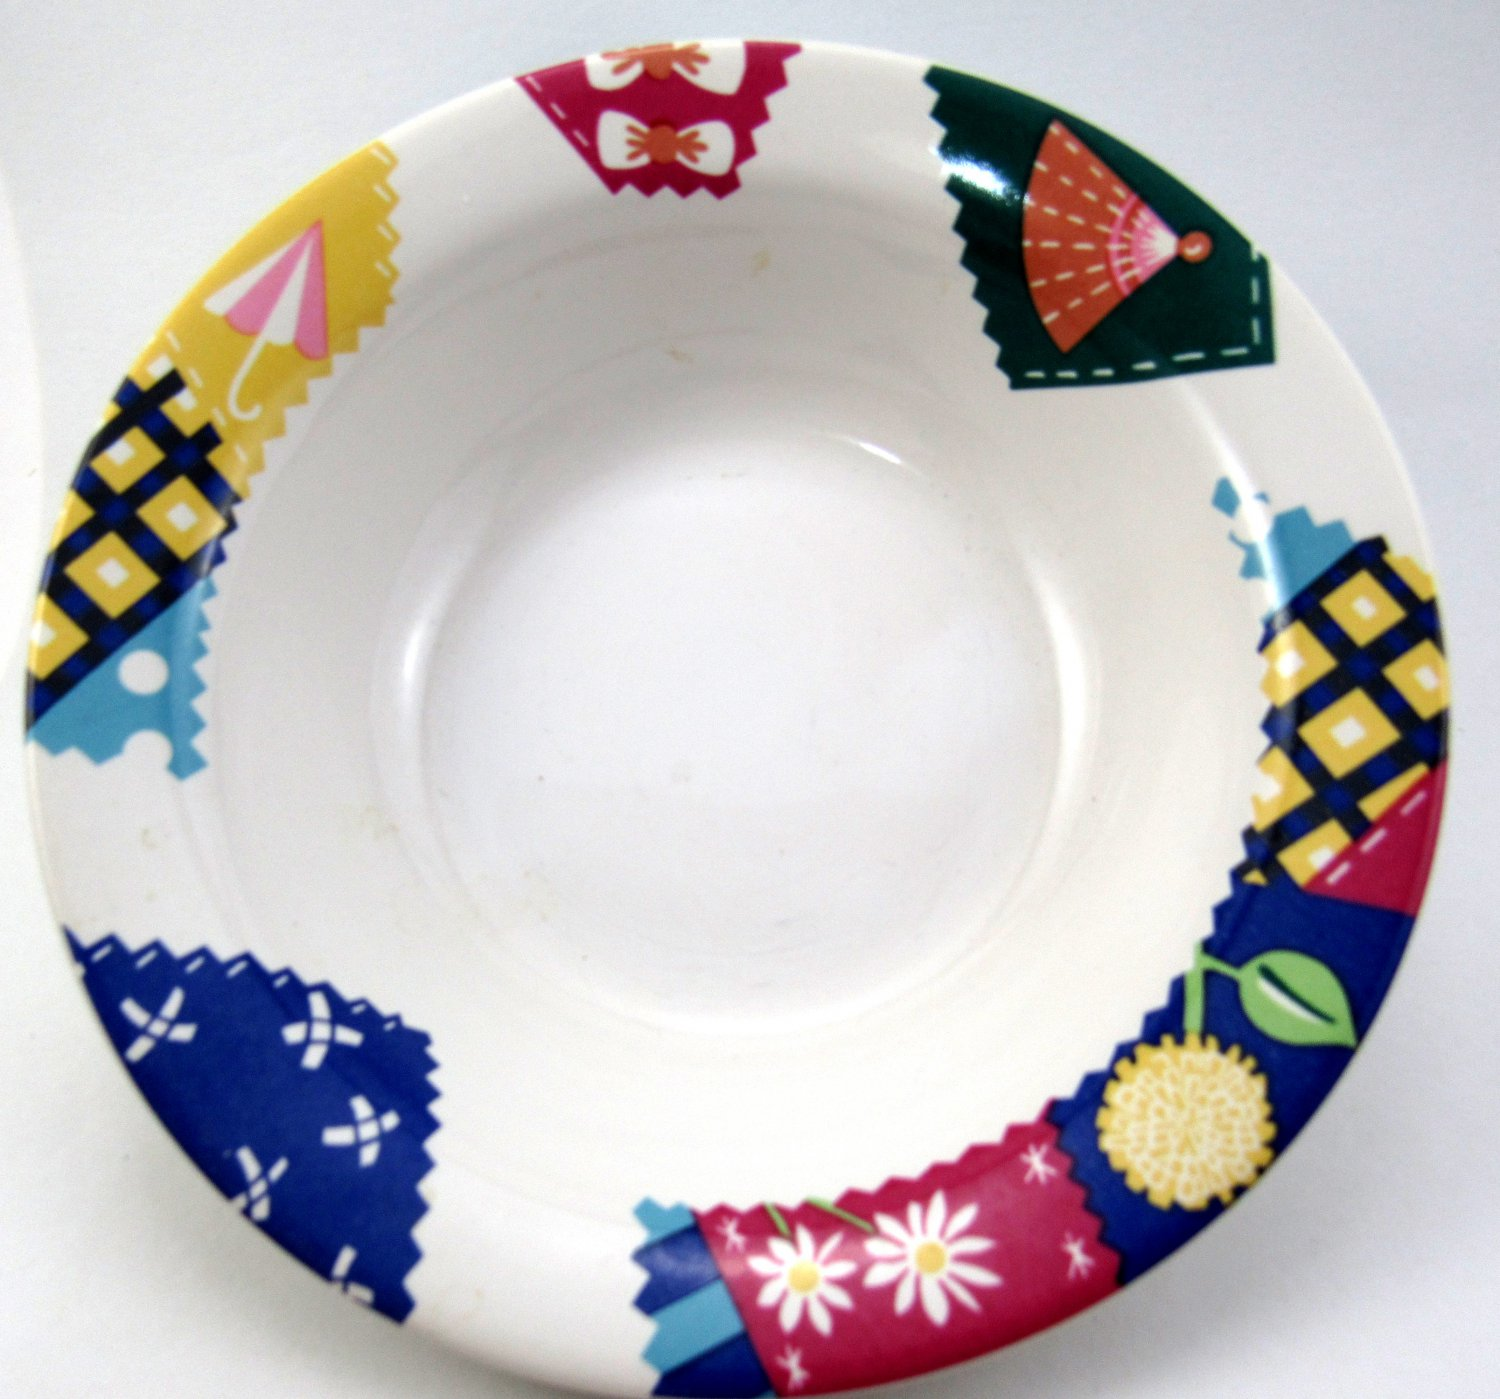 Crazy Quilt Number 103 Bowl 6 3/4 Inches International Tableworks White with Colorful Quilt Design